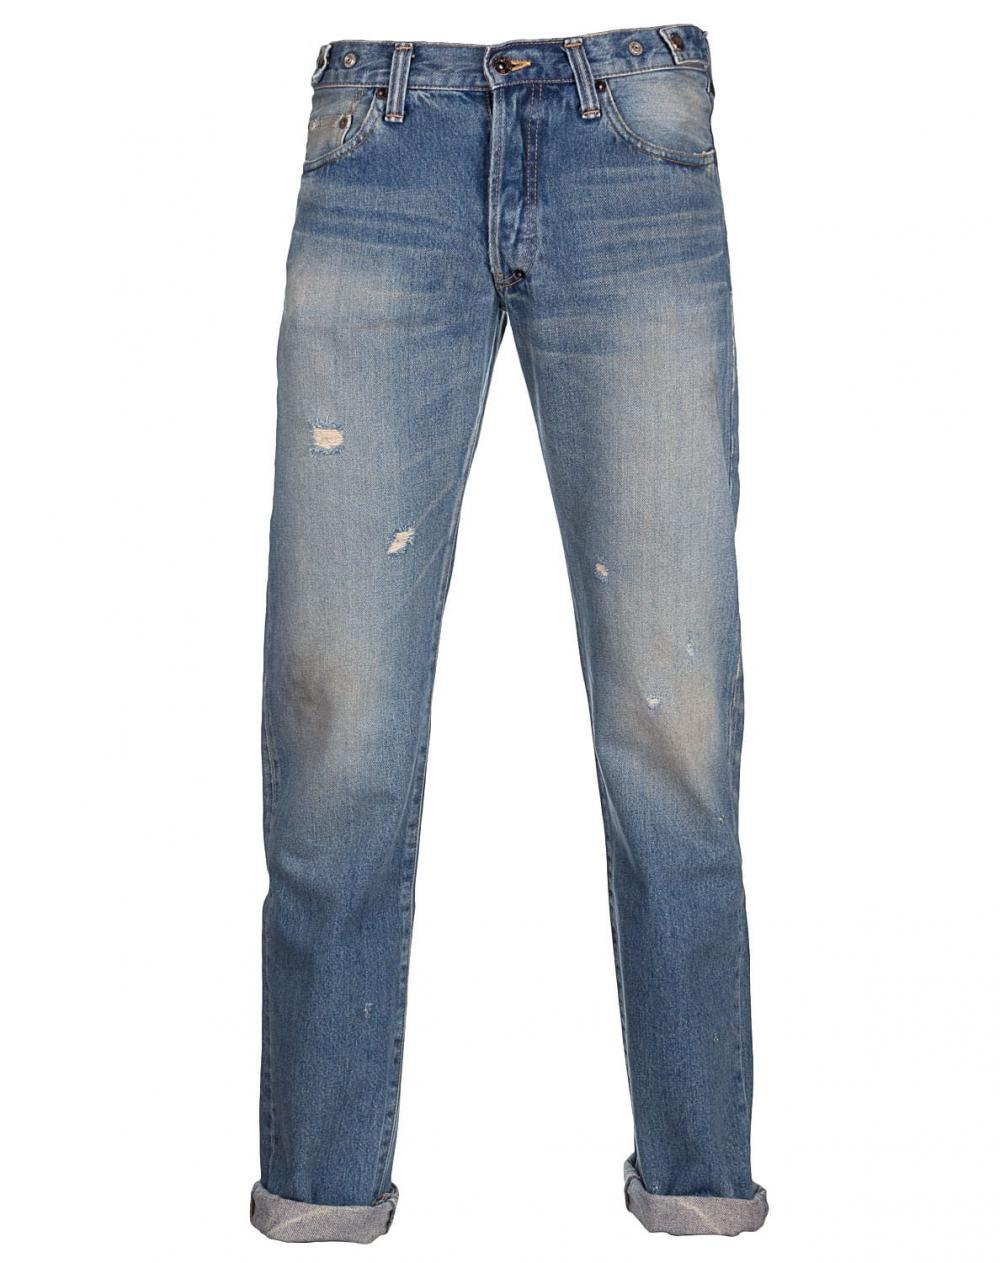 Jeans Barracuda Medium